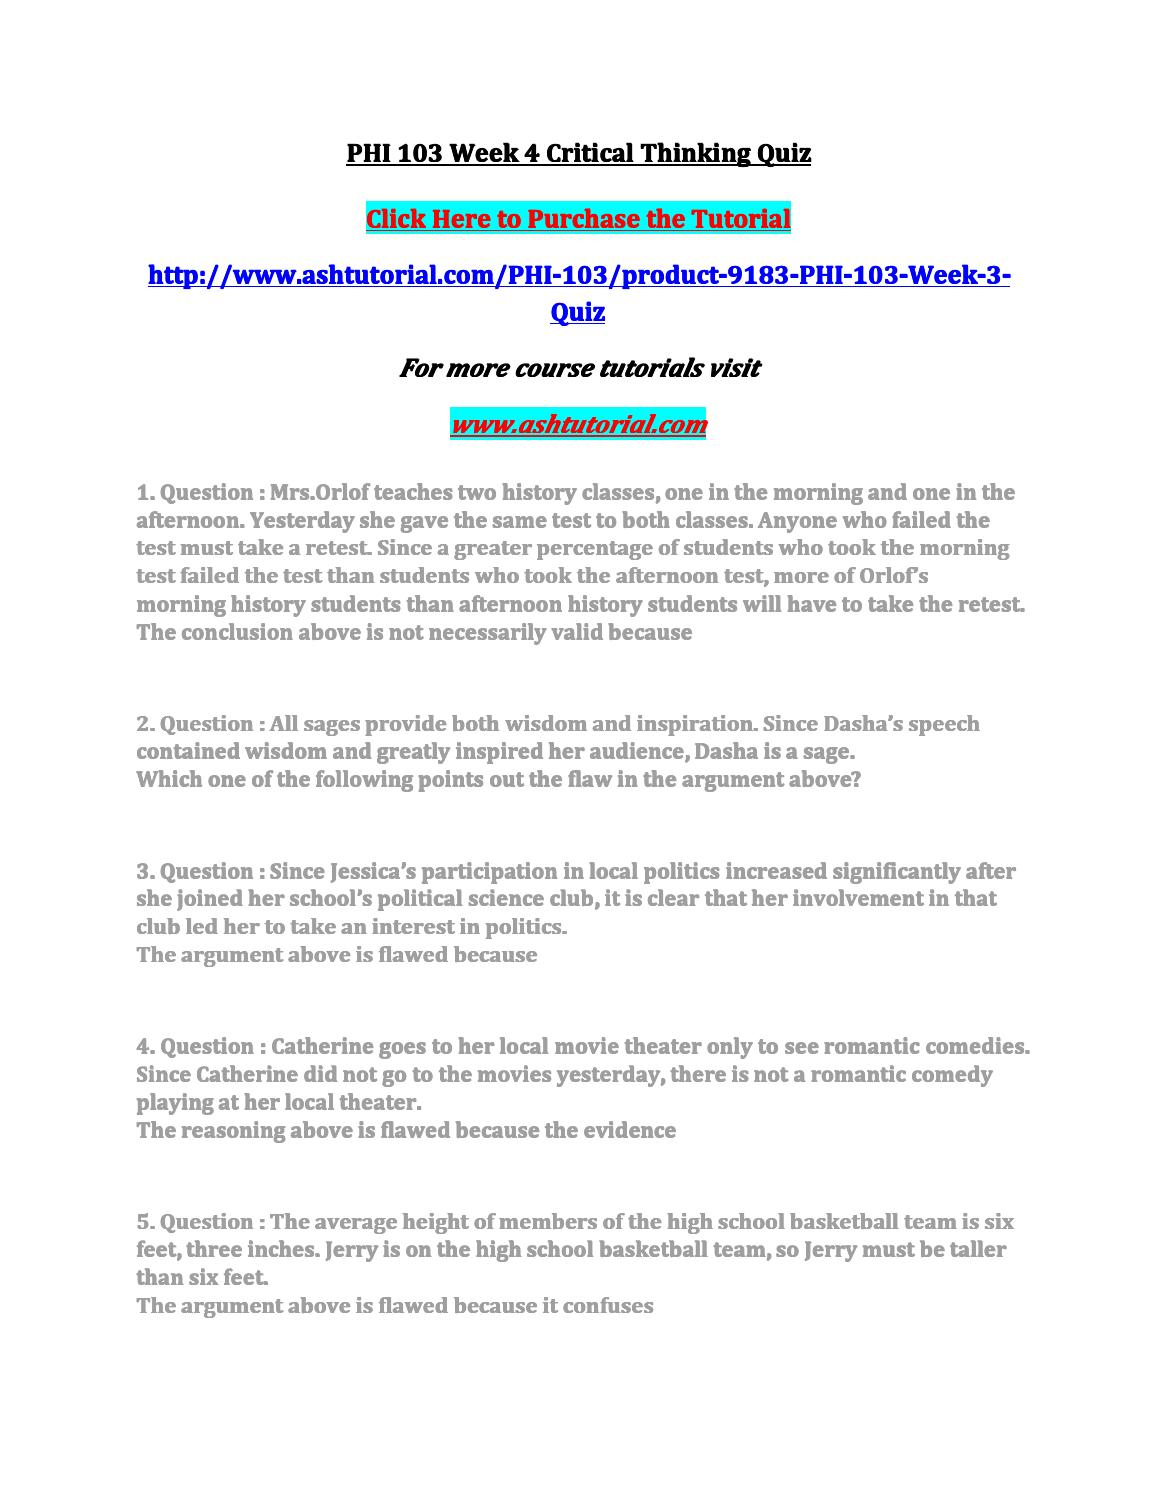 phi 103 week 4 critical thinking quiz answers If homework seems too challenging, visit our service to benefit from great academic assistance our tutors are available 24/7 to answer your questions.